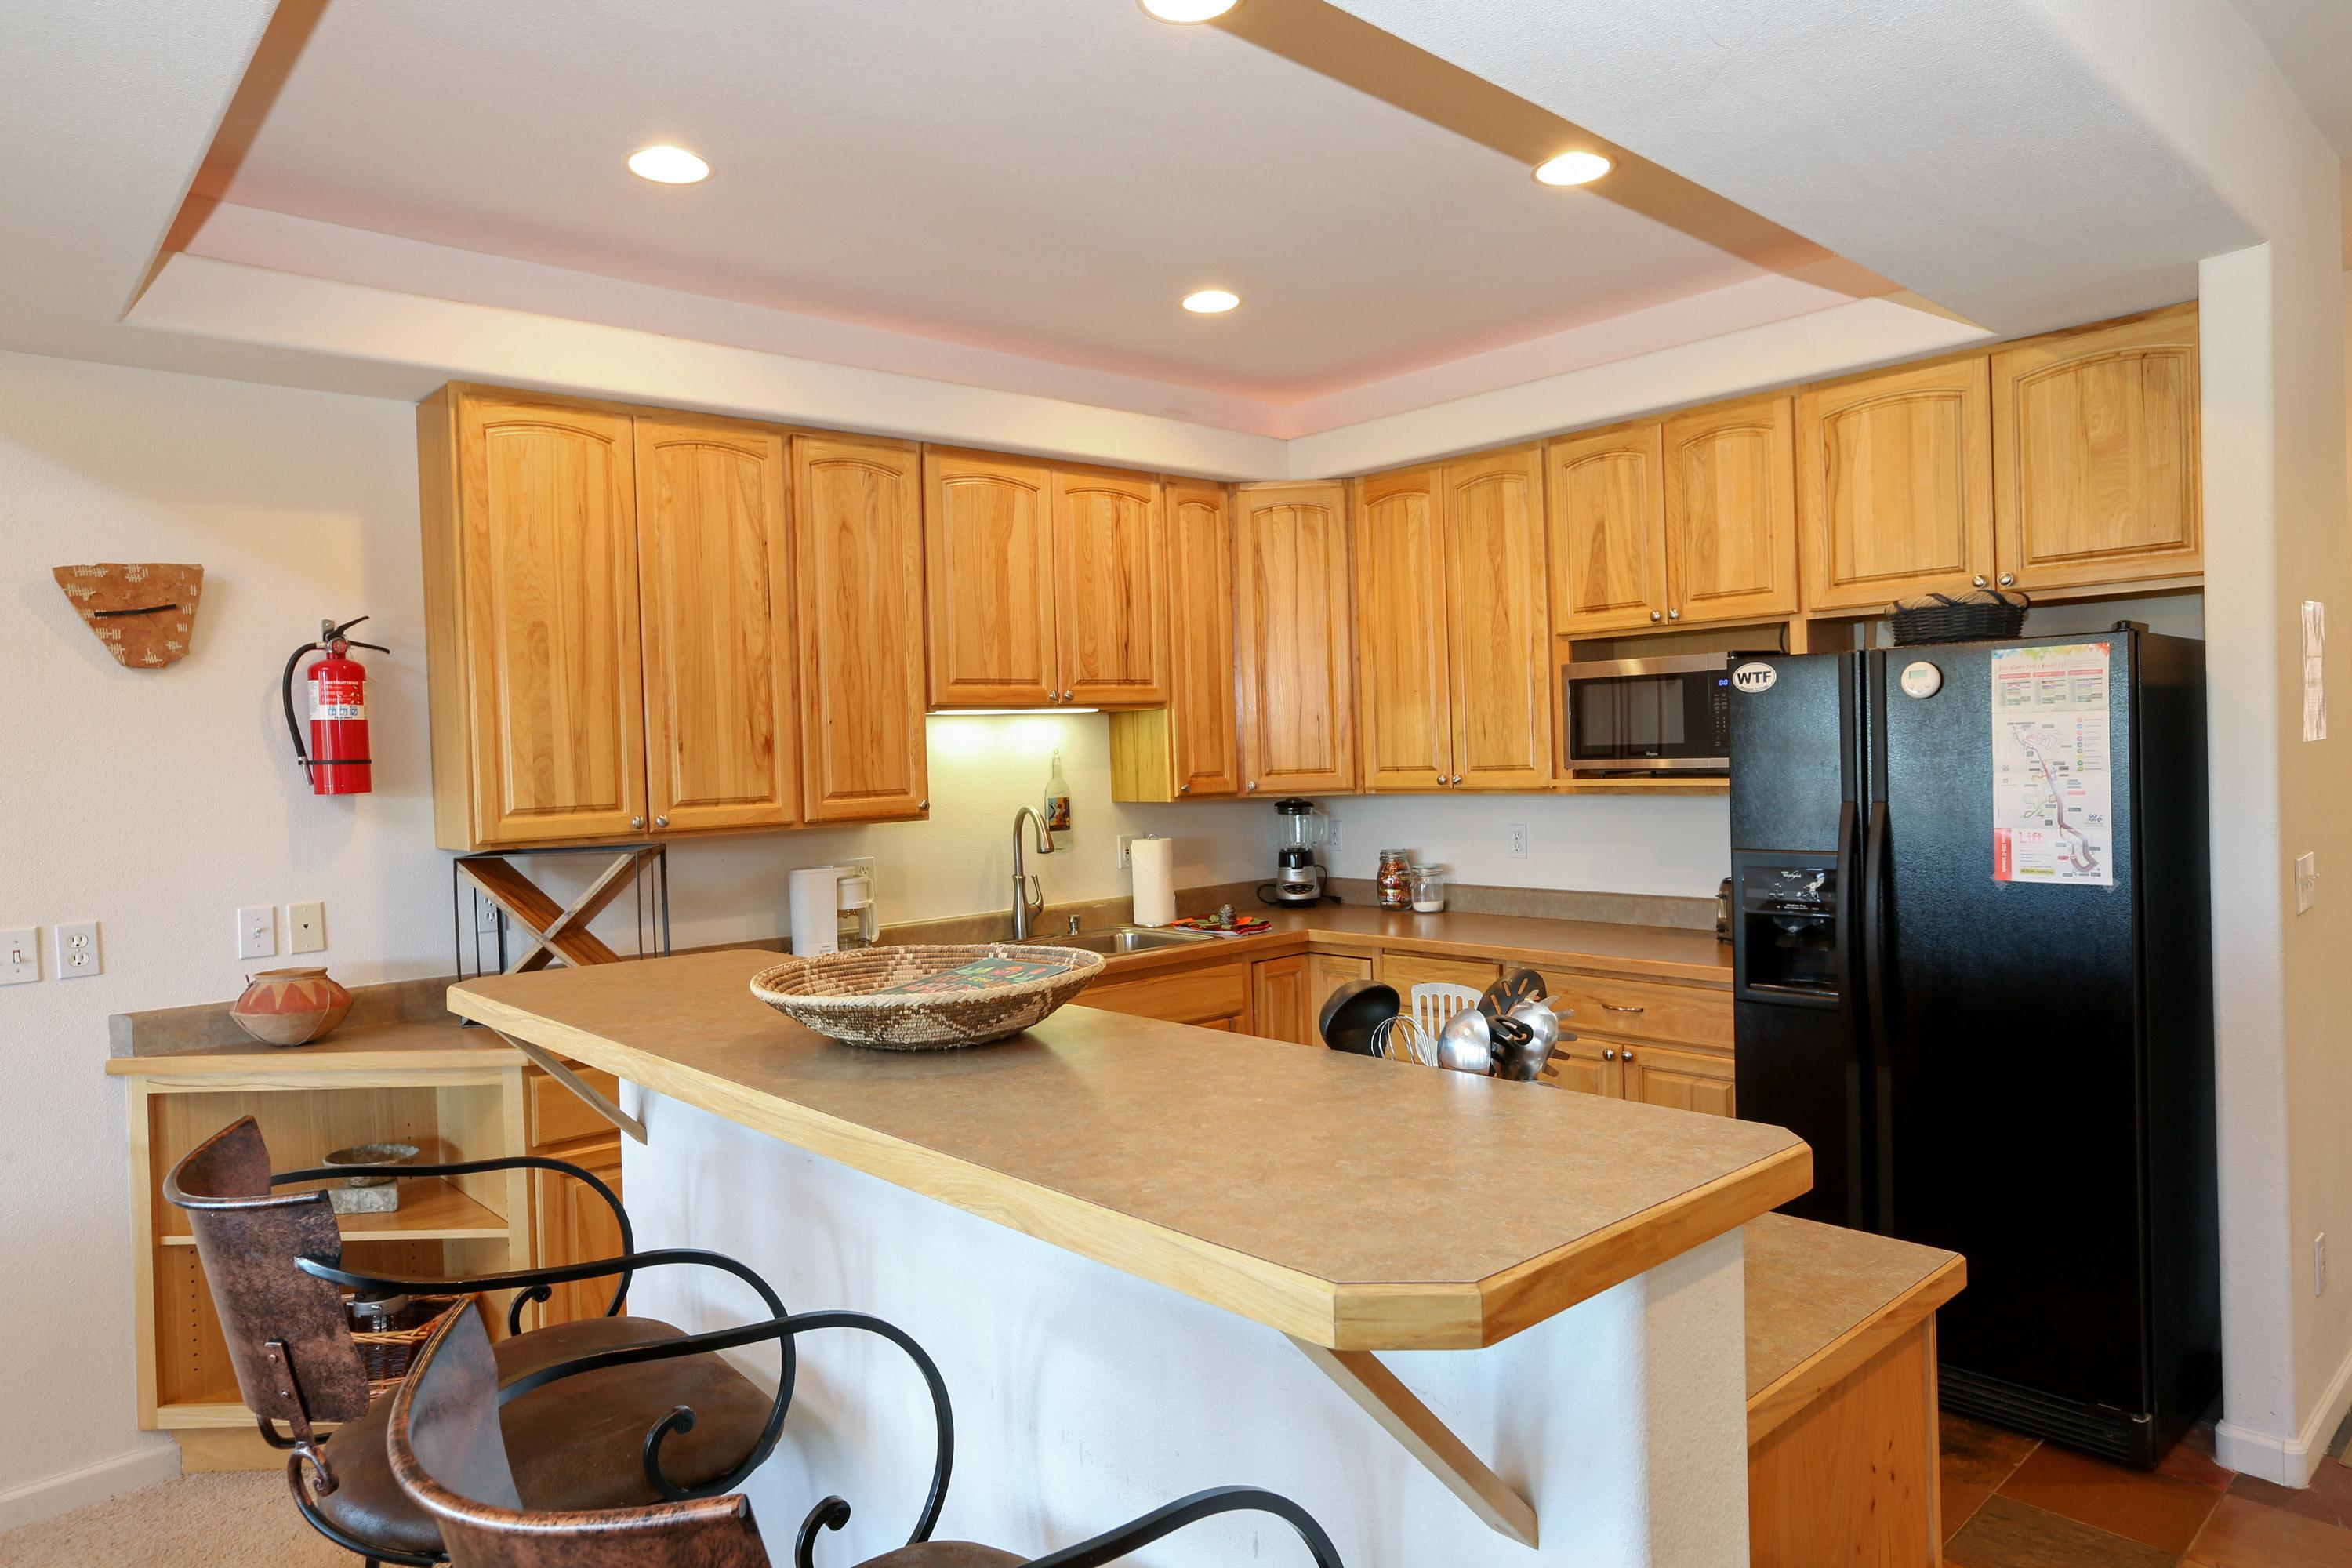 The well-equipped kitchen has everything needed to put together full meals. Along with high-end appliances, you'll find handy extras like a toaster, coffeemaker, and blender.